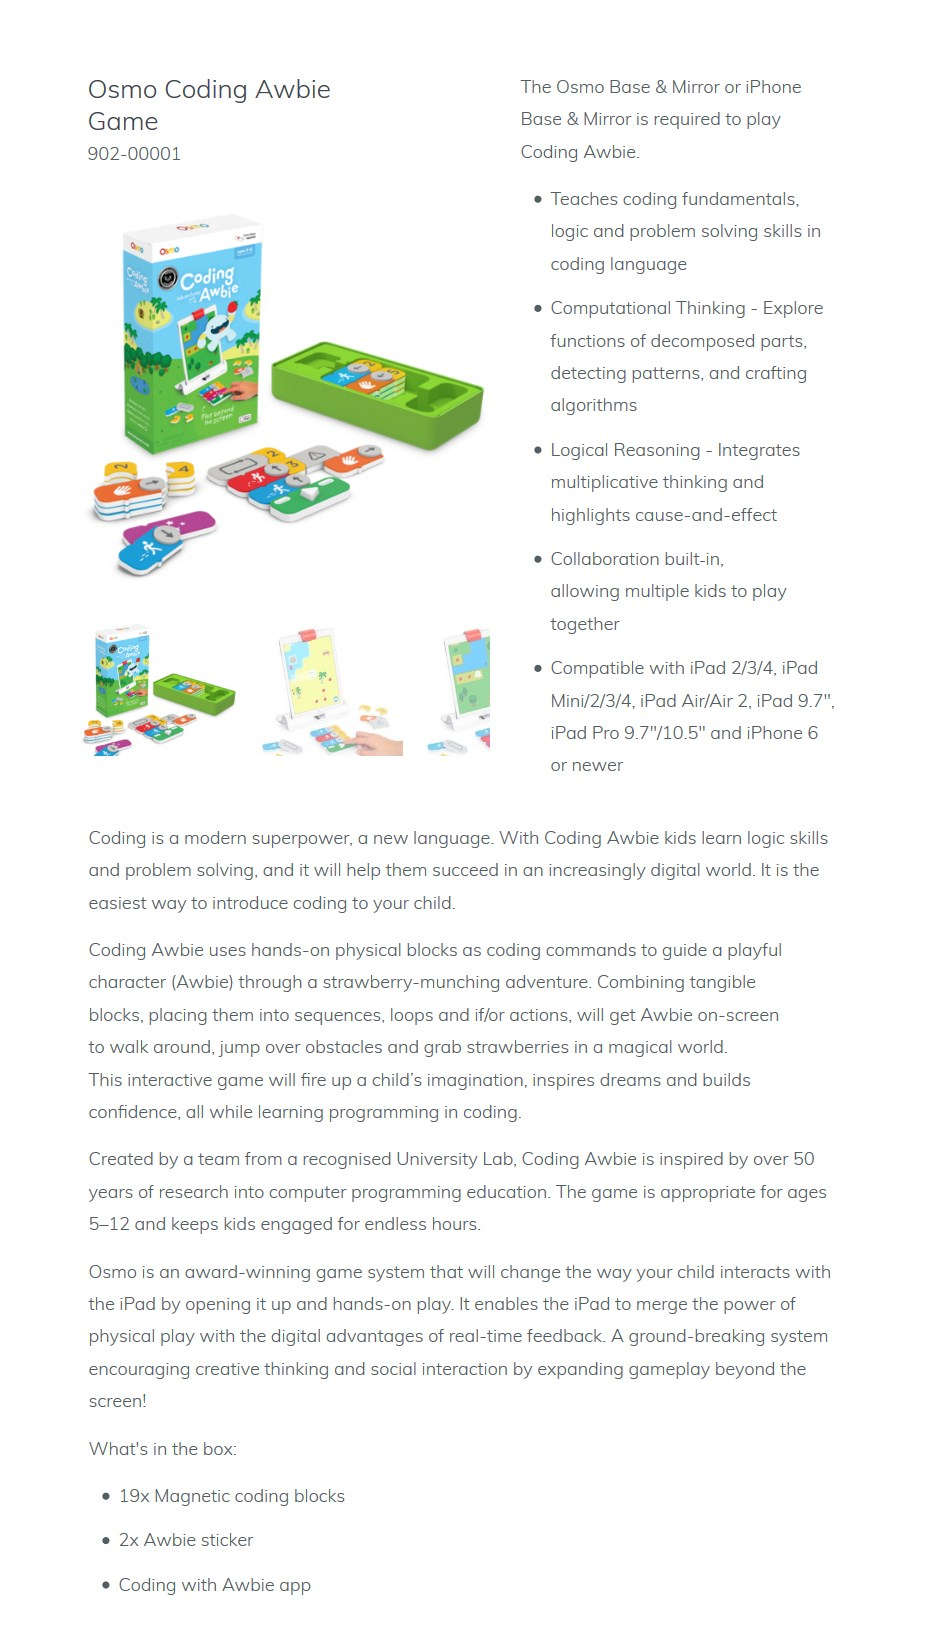 Osmo Coding Awbie Game for iPhone & iPad - Desktop Overview 2